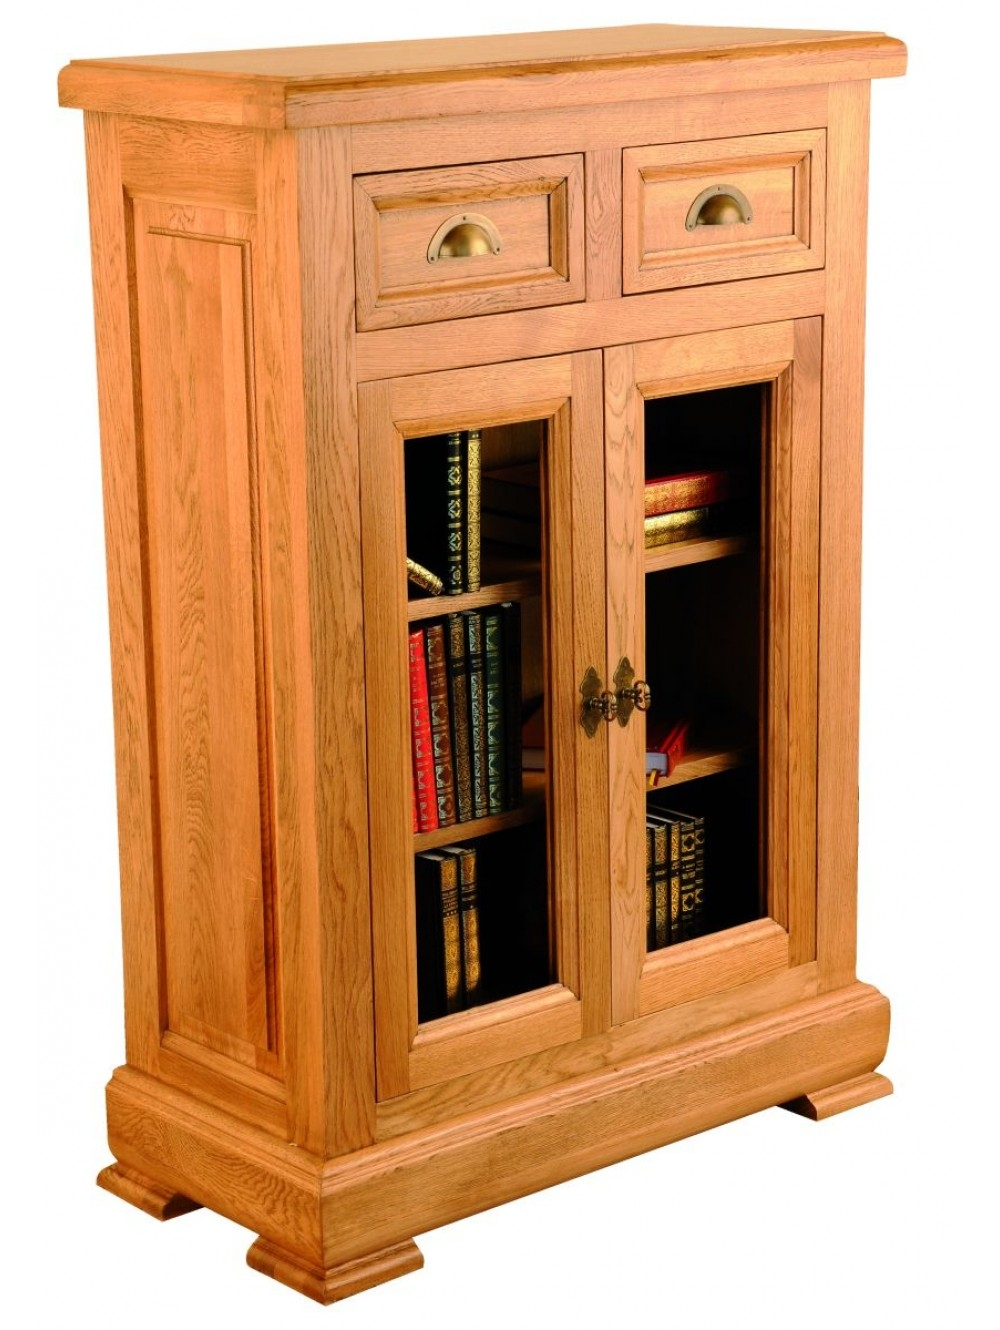 Low Hallway Cabinet with Glazed Doors 511340